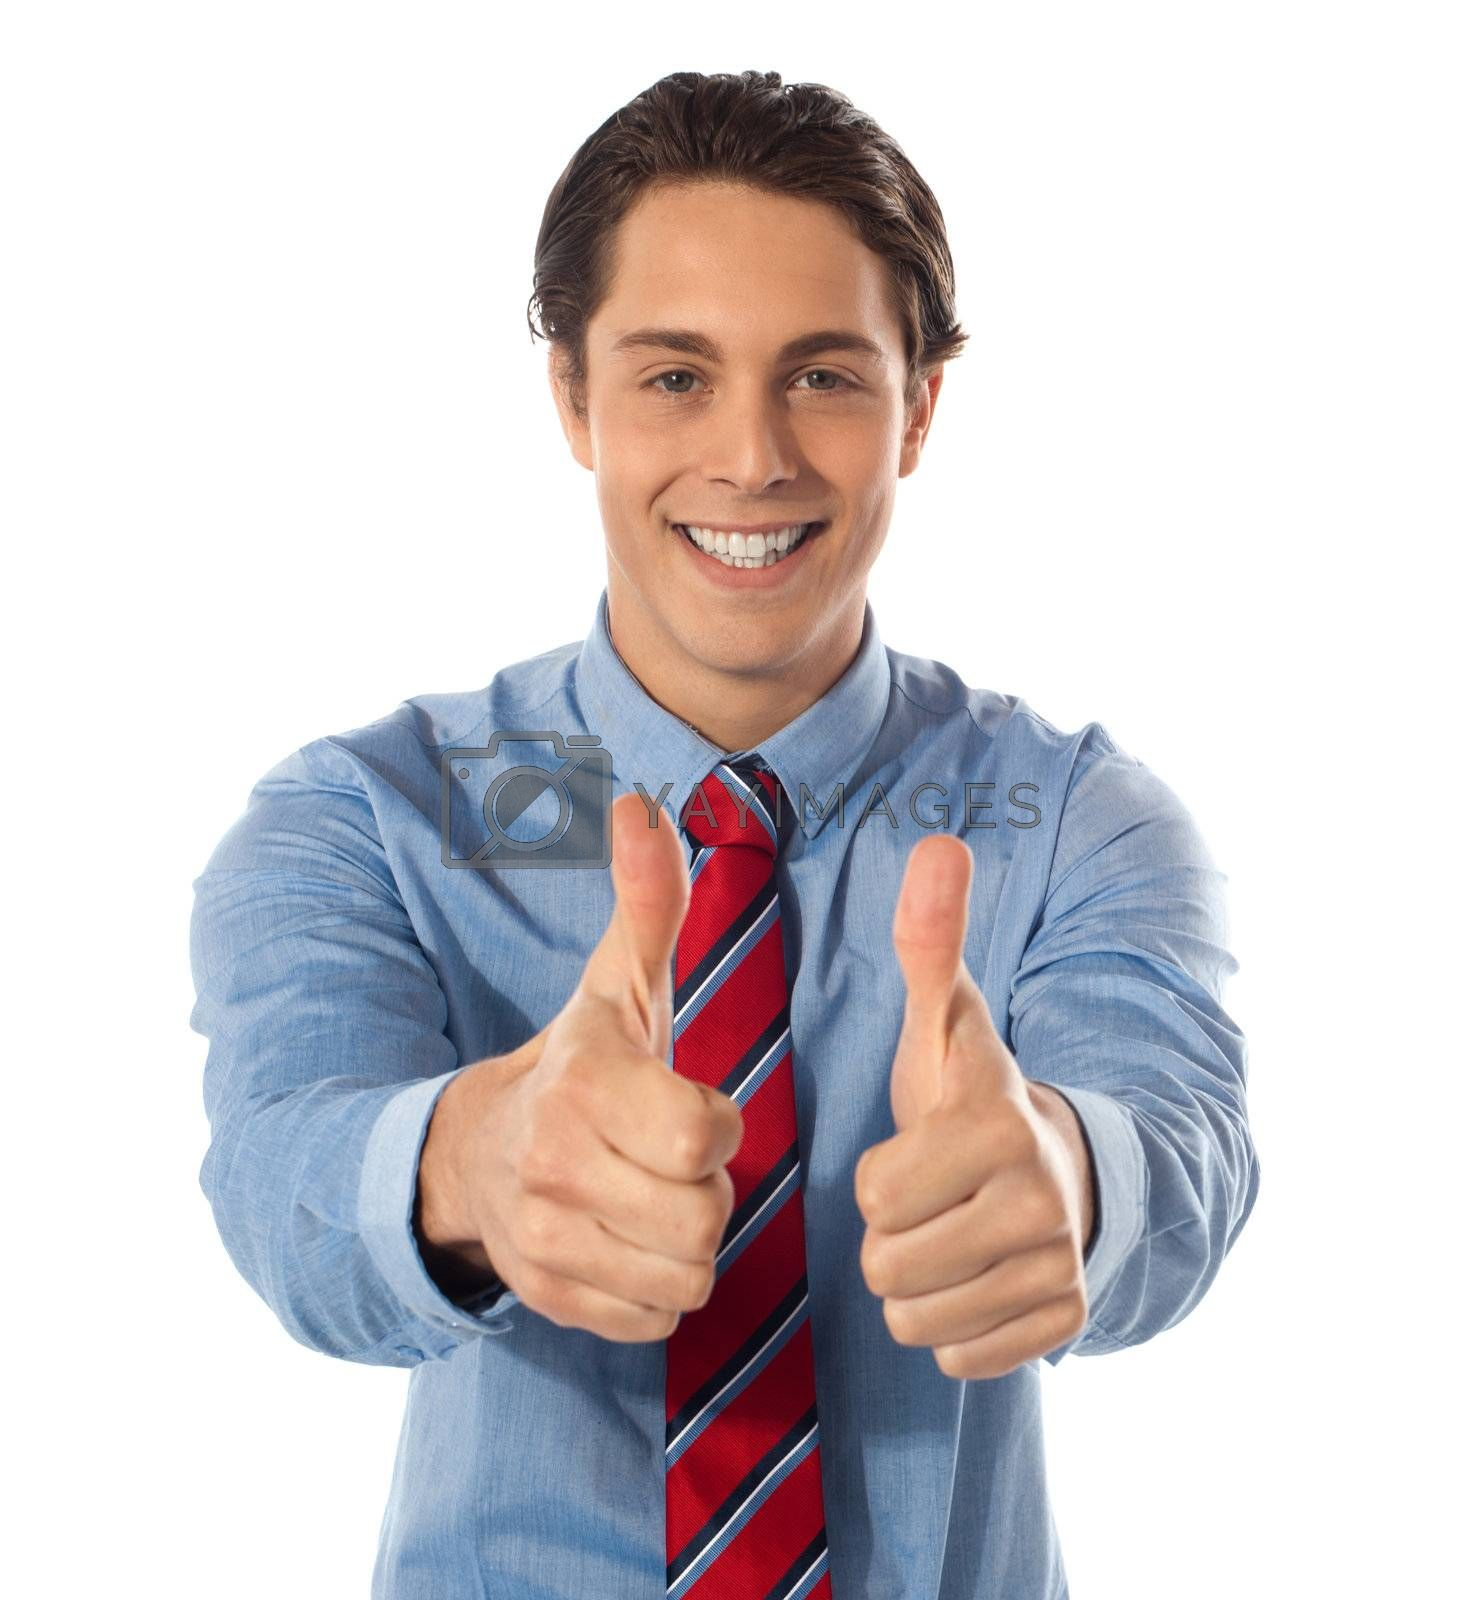 Handsome male executive gesturing thumbs-up